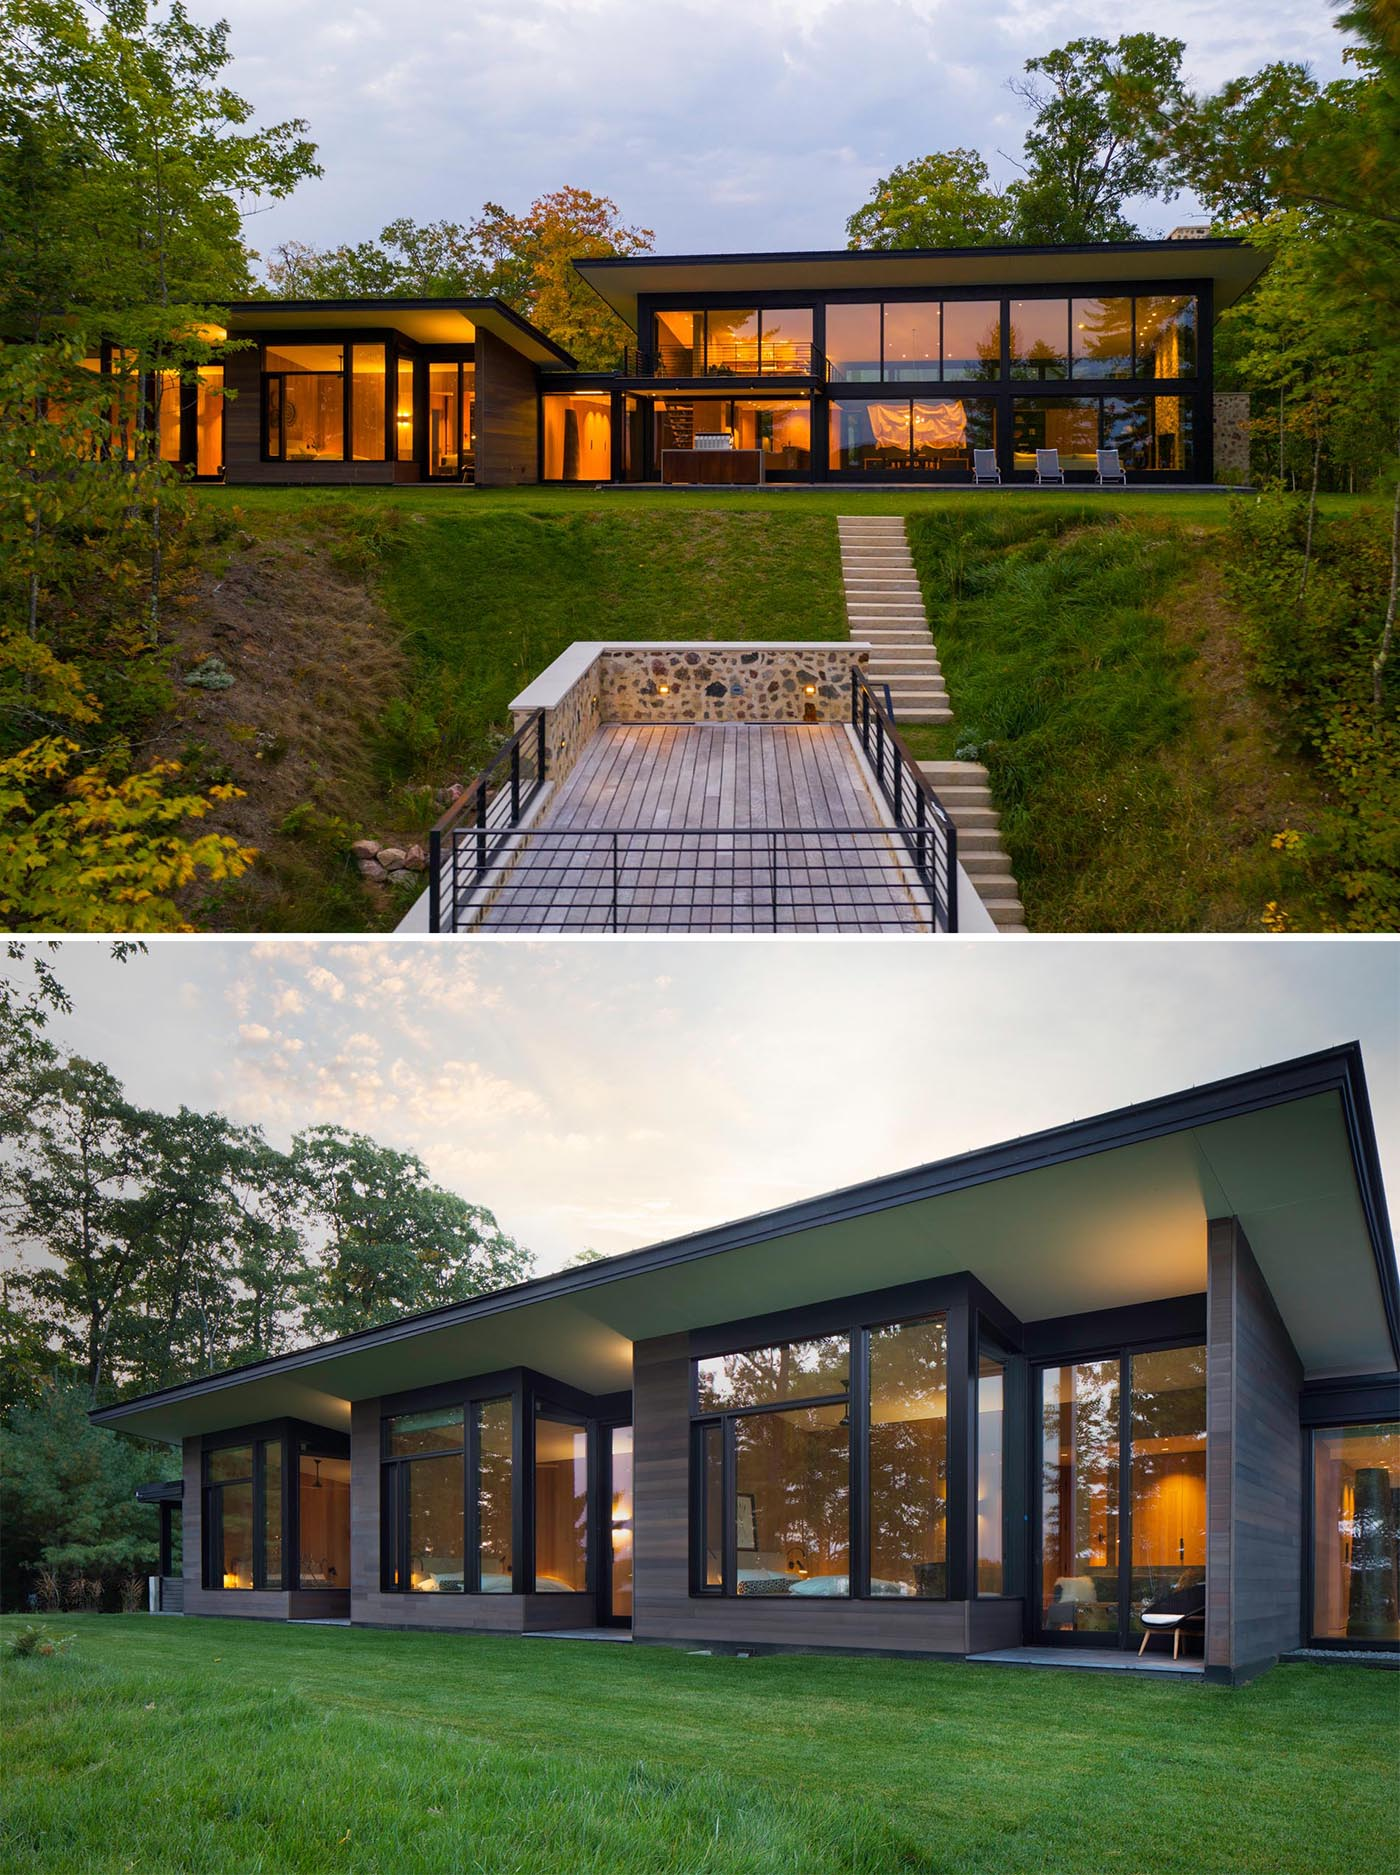 The lakefront side of the home has large windows that span the entire exterior, filling the interior with natural light, and allowing the views of the lake and the boathouse below to be enjoyed.